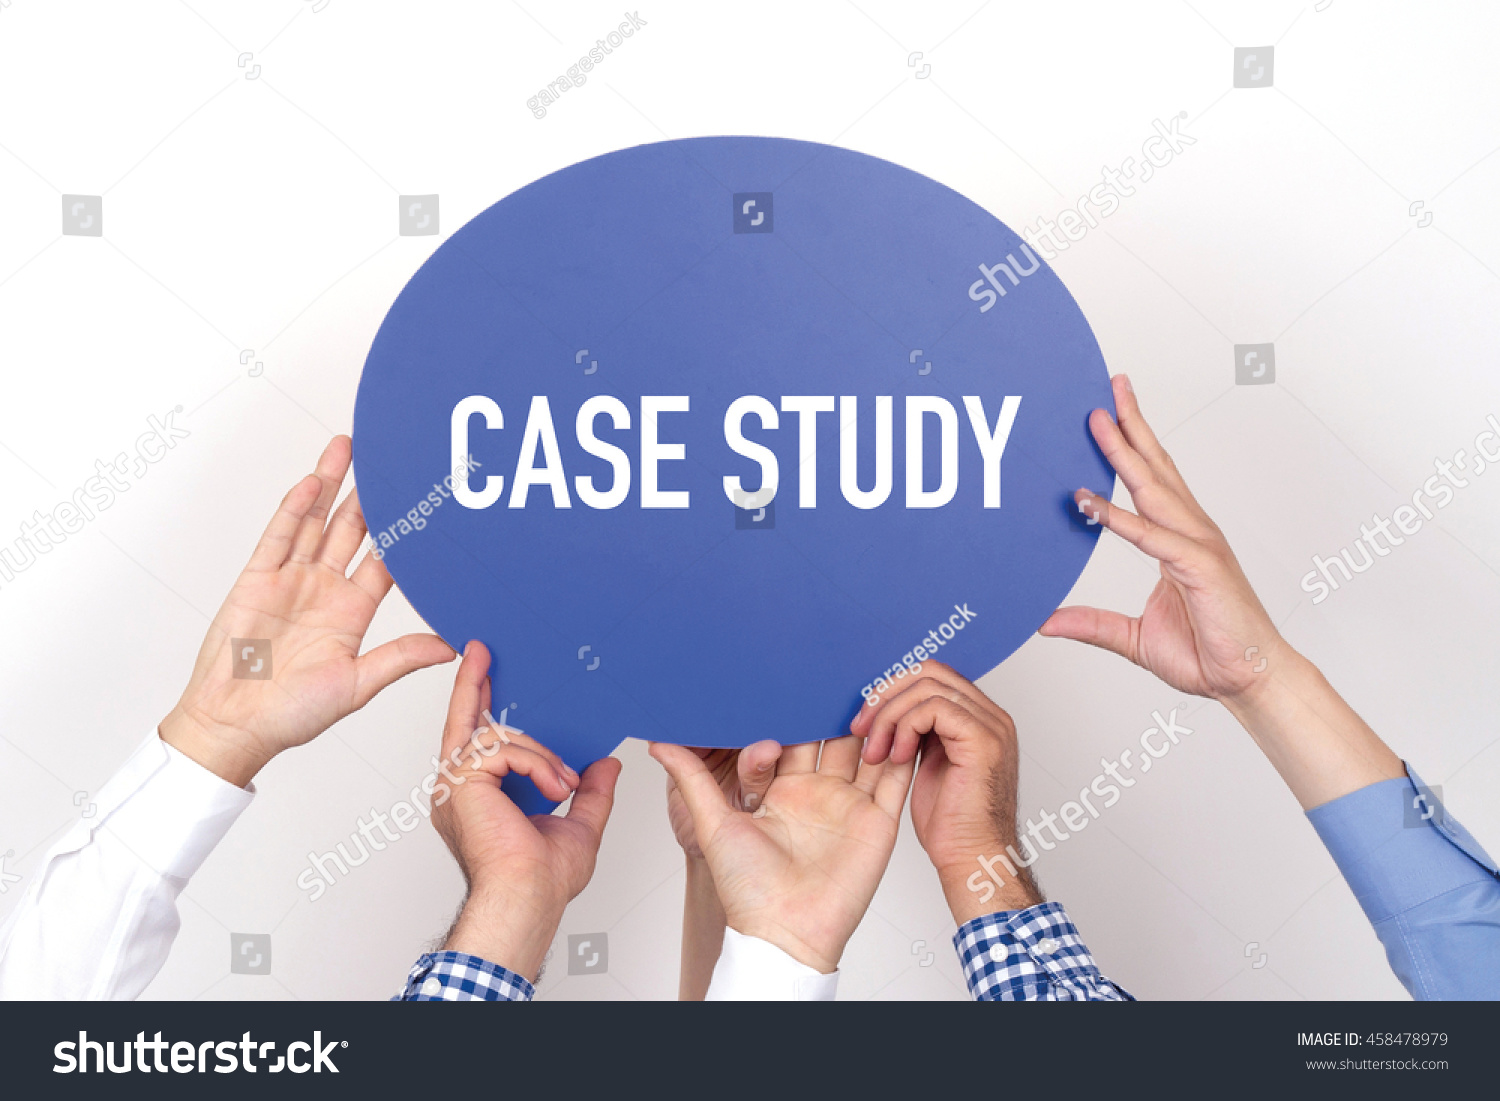 case written Case report definition an article that describes and interprets an individual case, often written in the form of a detailed story case reports often describe.